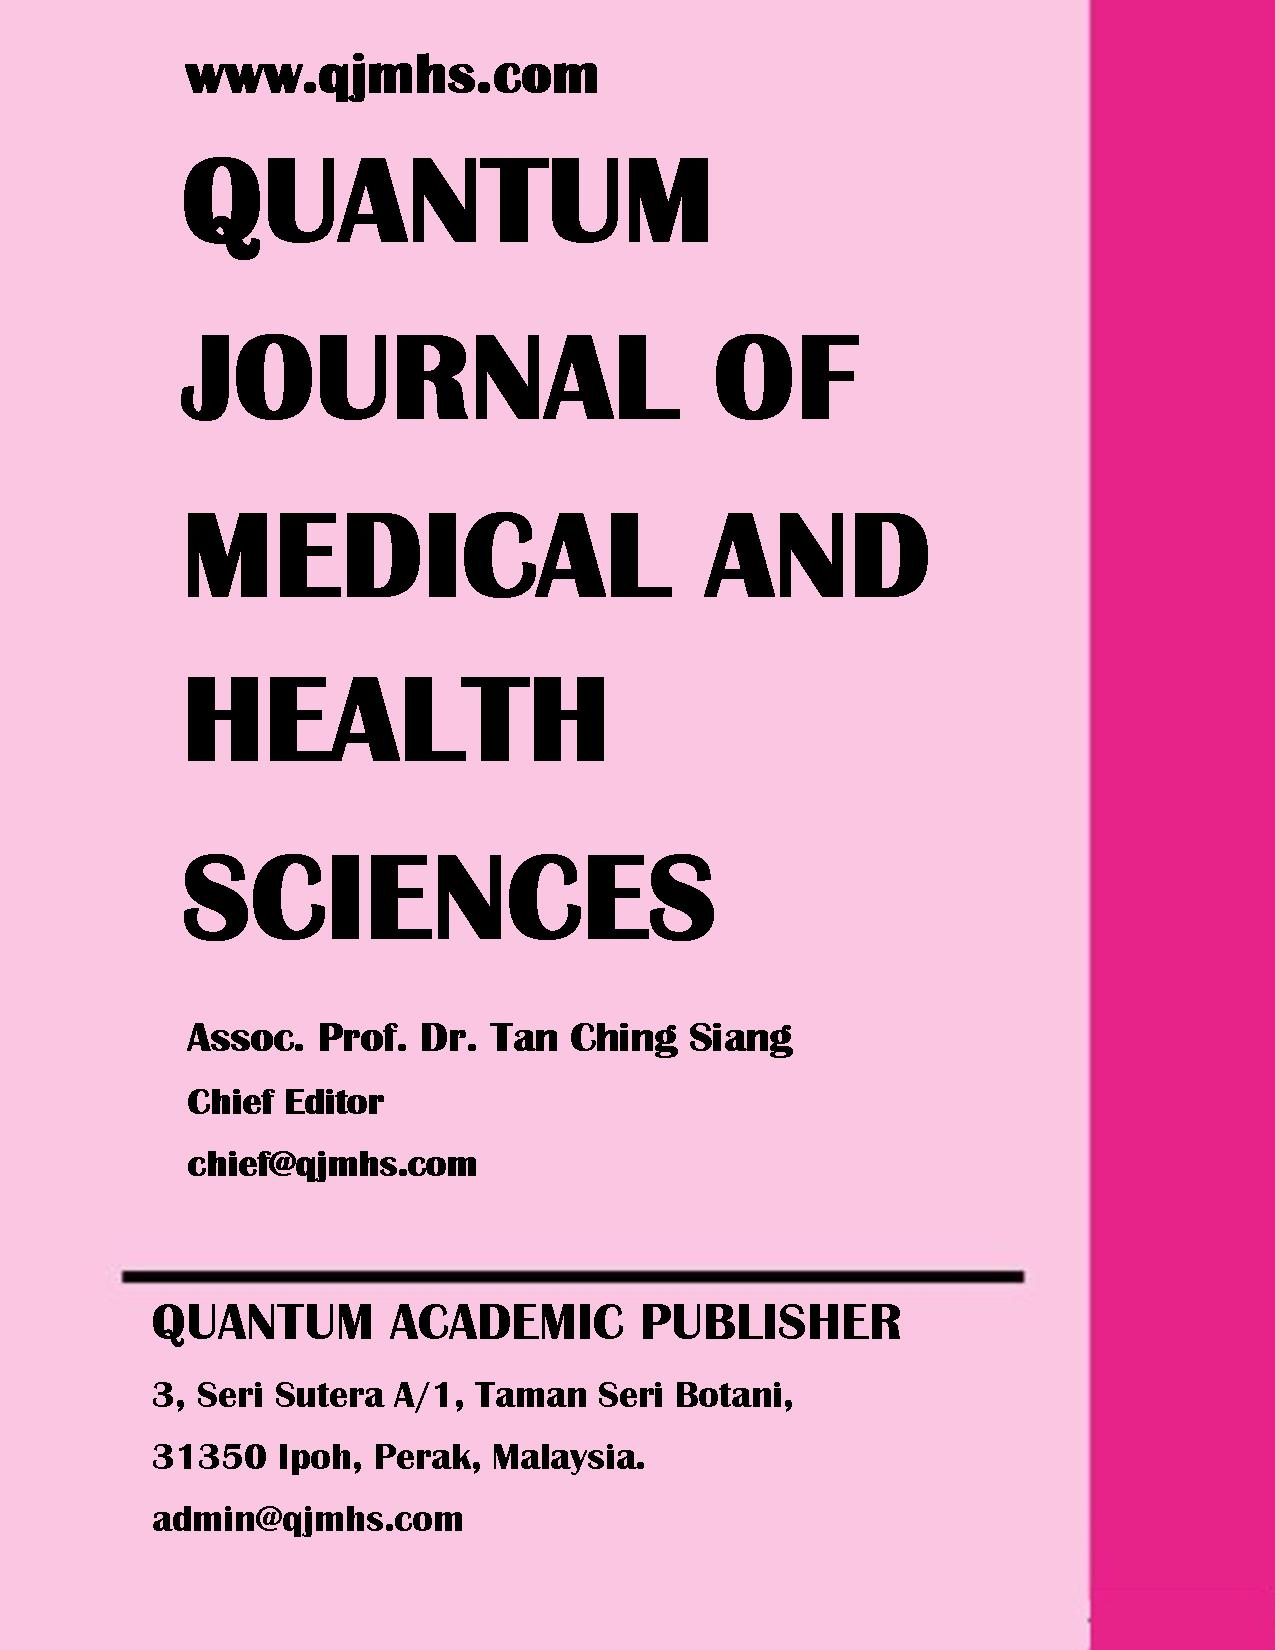 QUANTUM JOURNAL OF MEDICAL AND HEALTH SCIENCES